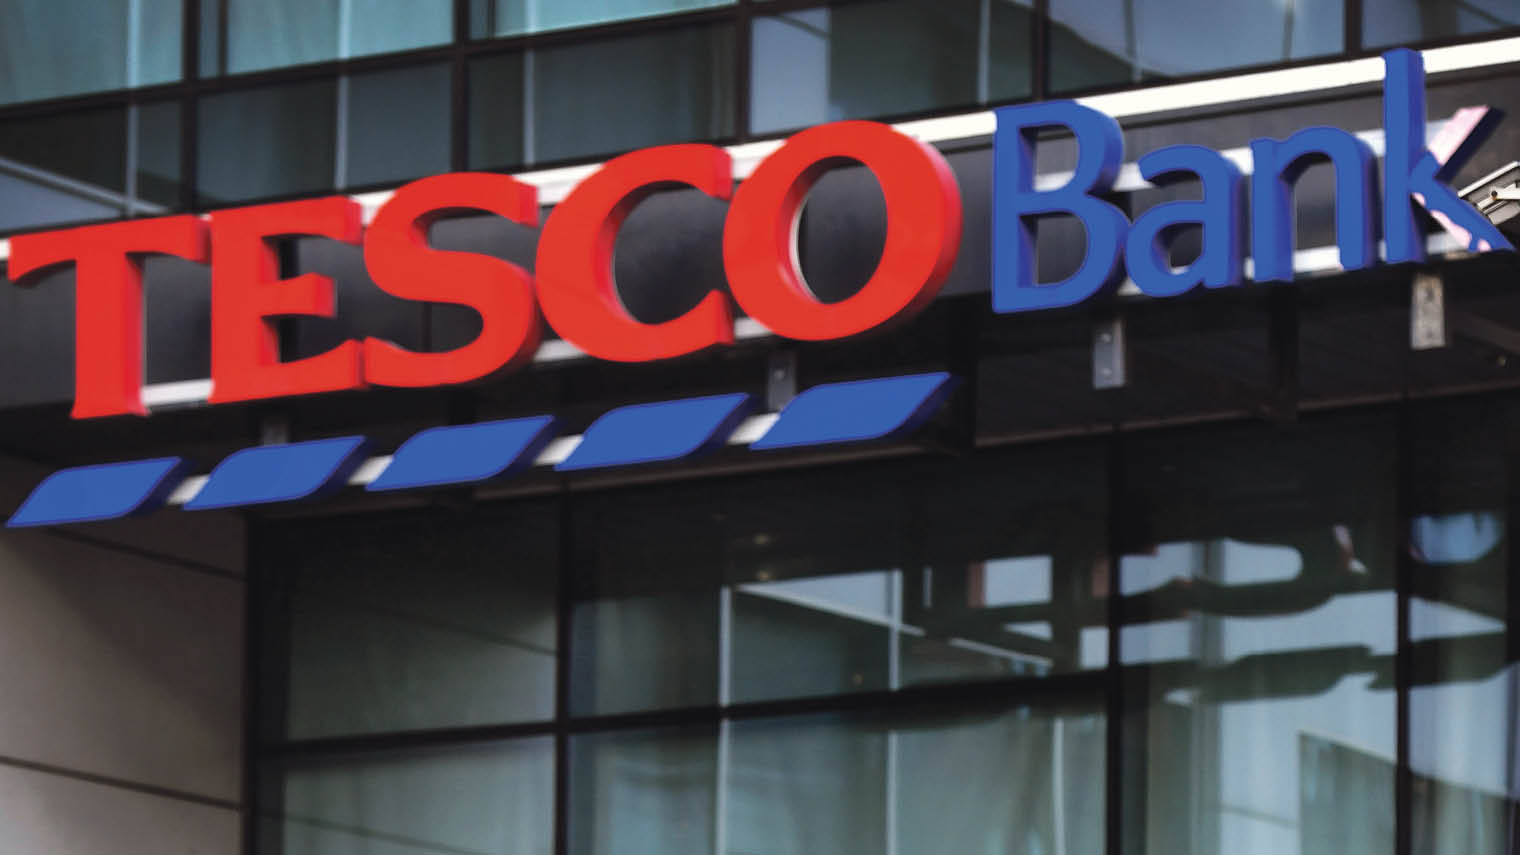 Tesco Bank was forced to repay £2.5 million to 9,000 customers following the November hack